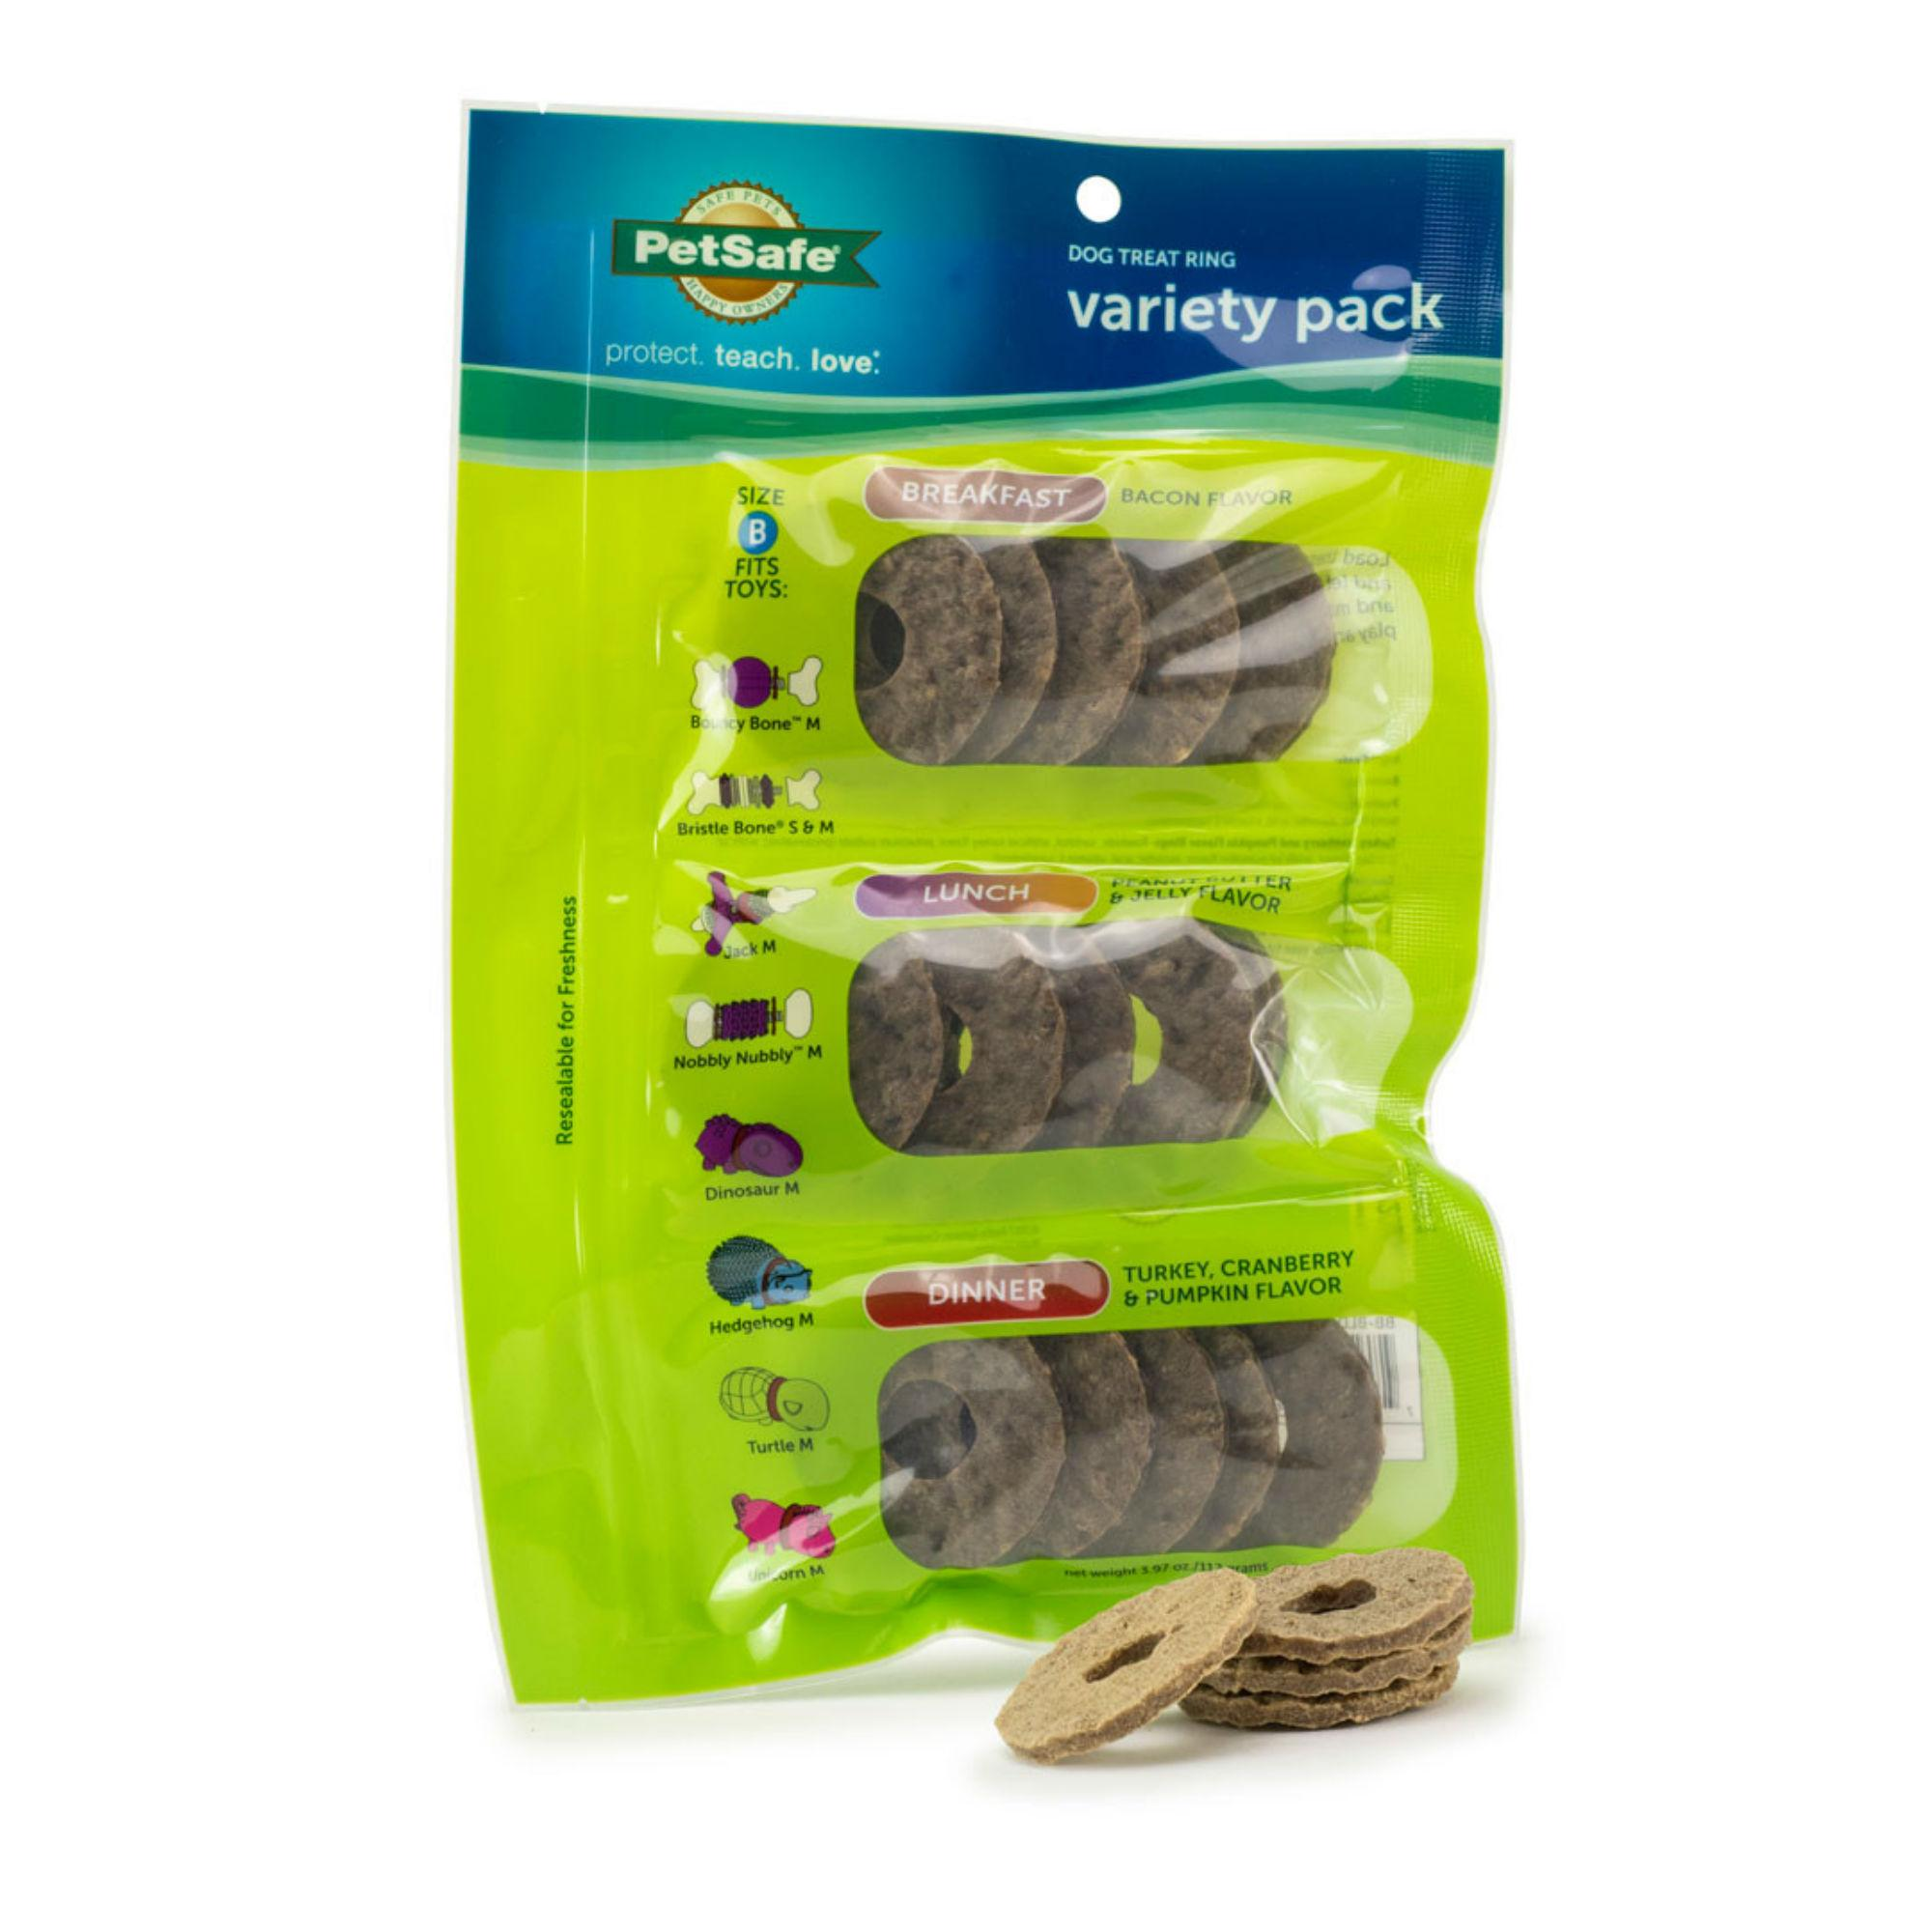 Busy Buddy Breakfast, Lunch, and Dinner Rawhide Ring Refills